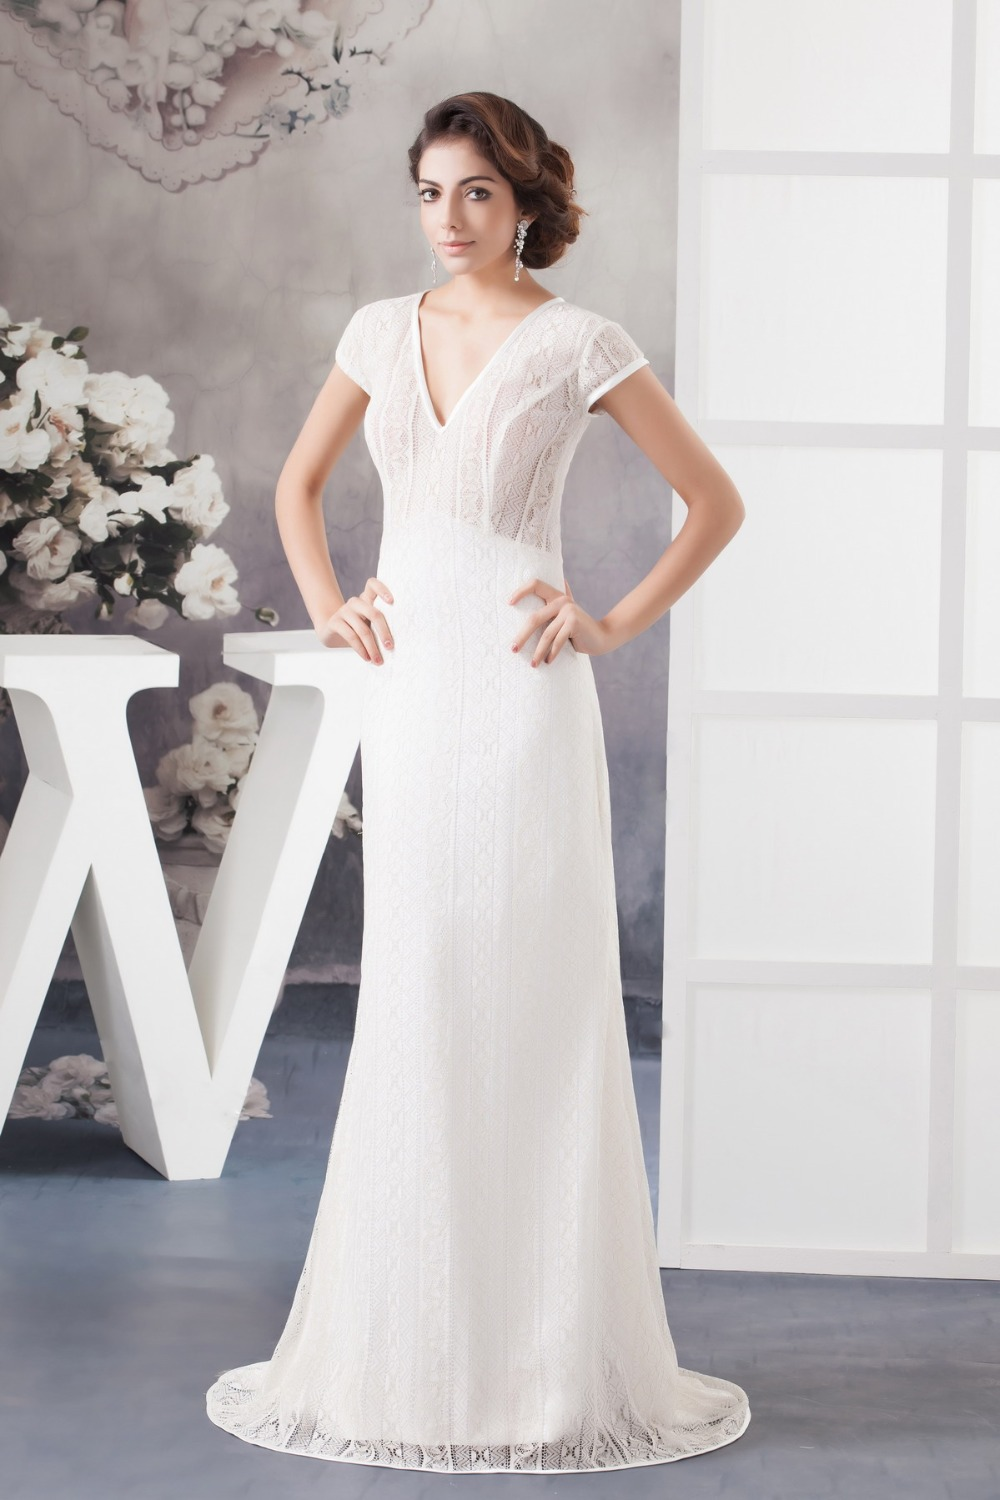 Wedding Dresses For Older Brides In  : Wedding dresses for older brides cocktail